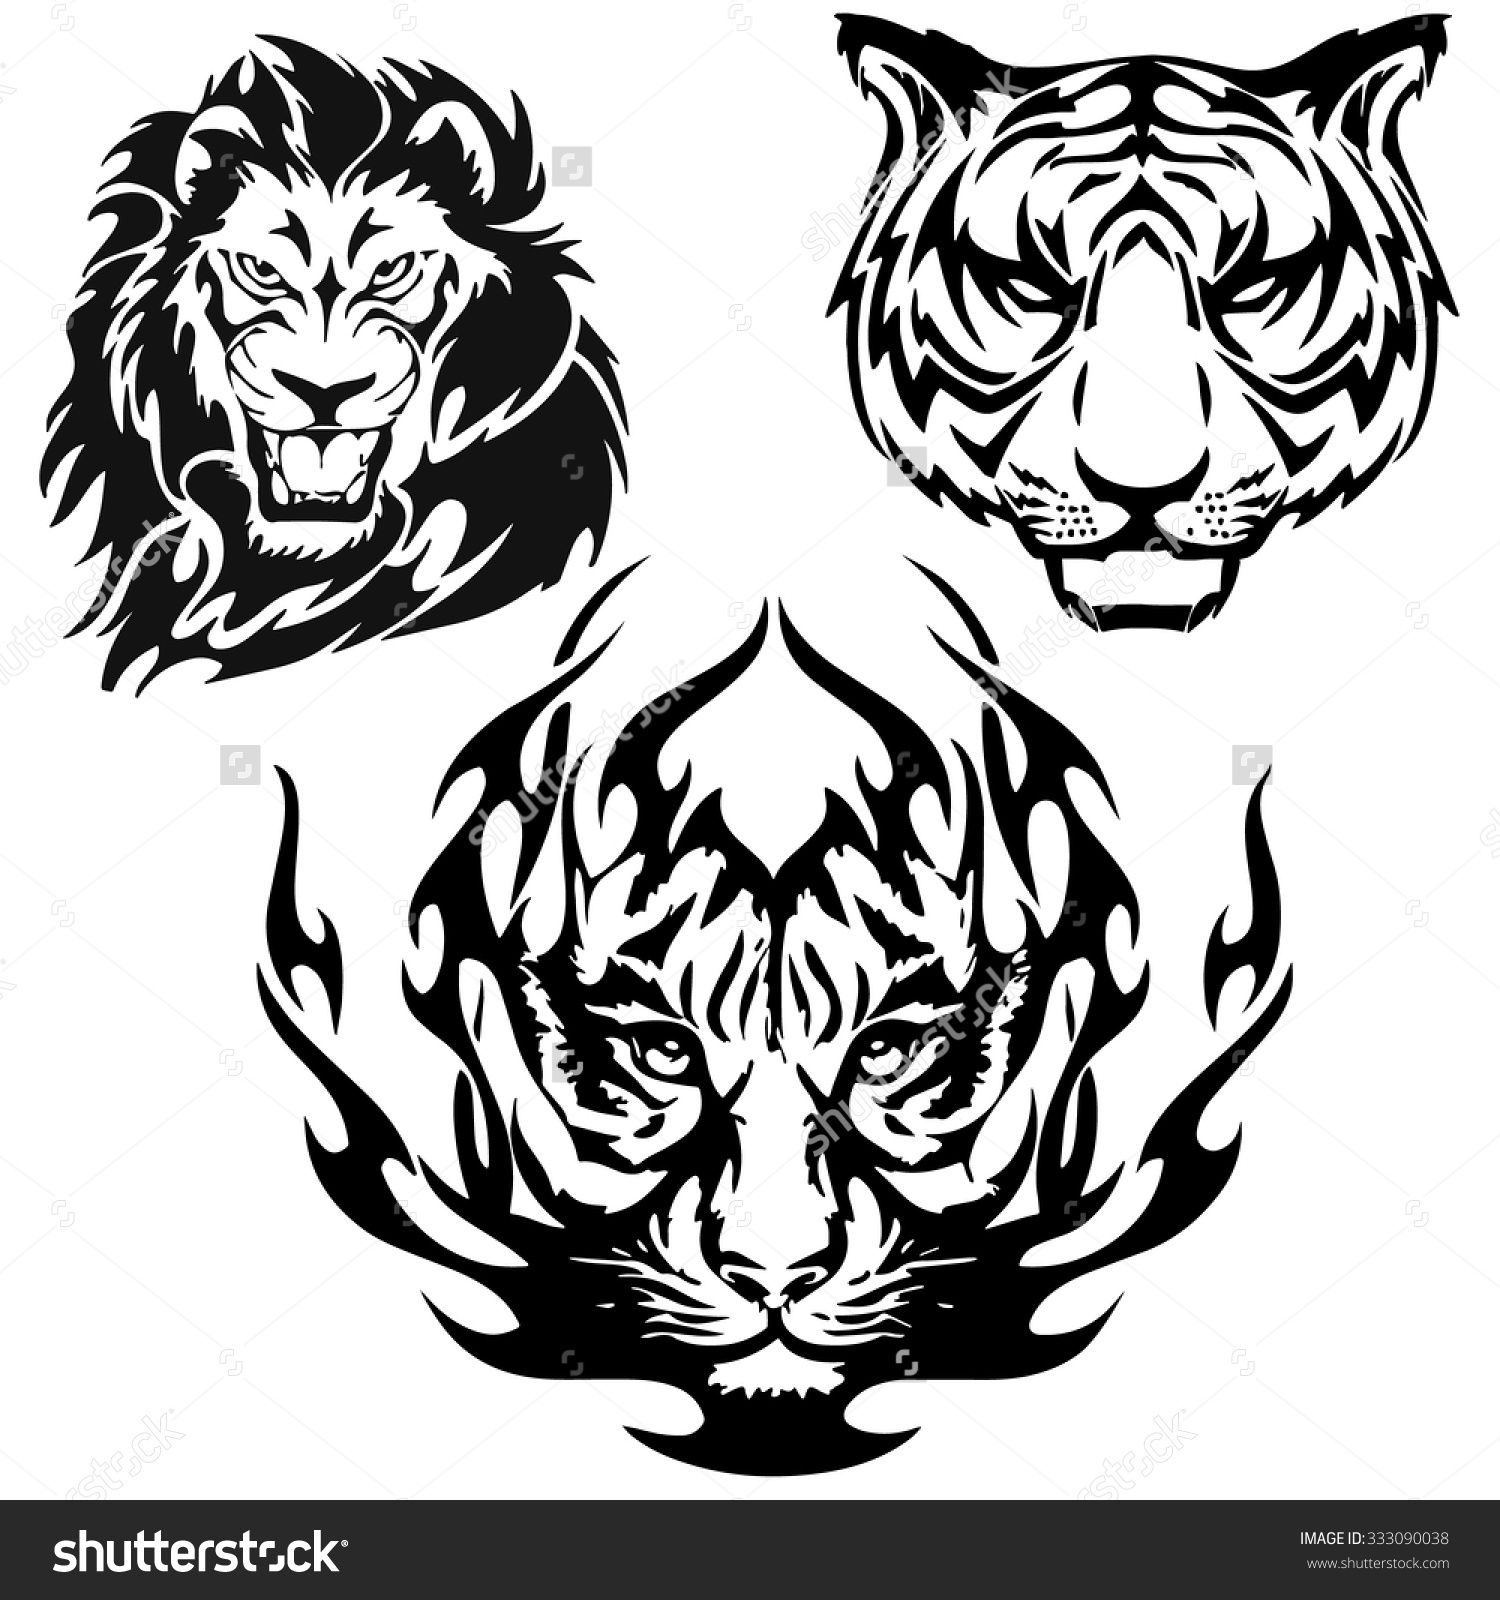 A Lion And Tiger Head Logo In Black And White